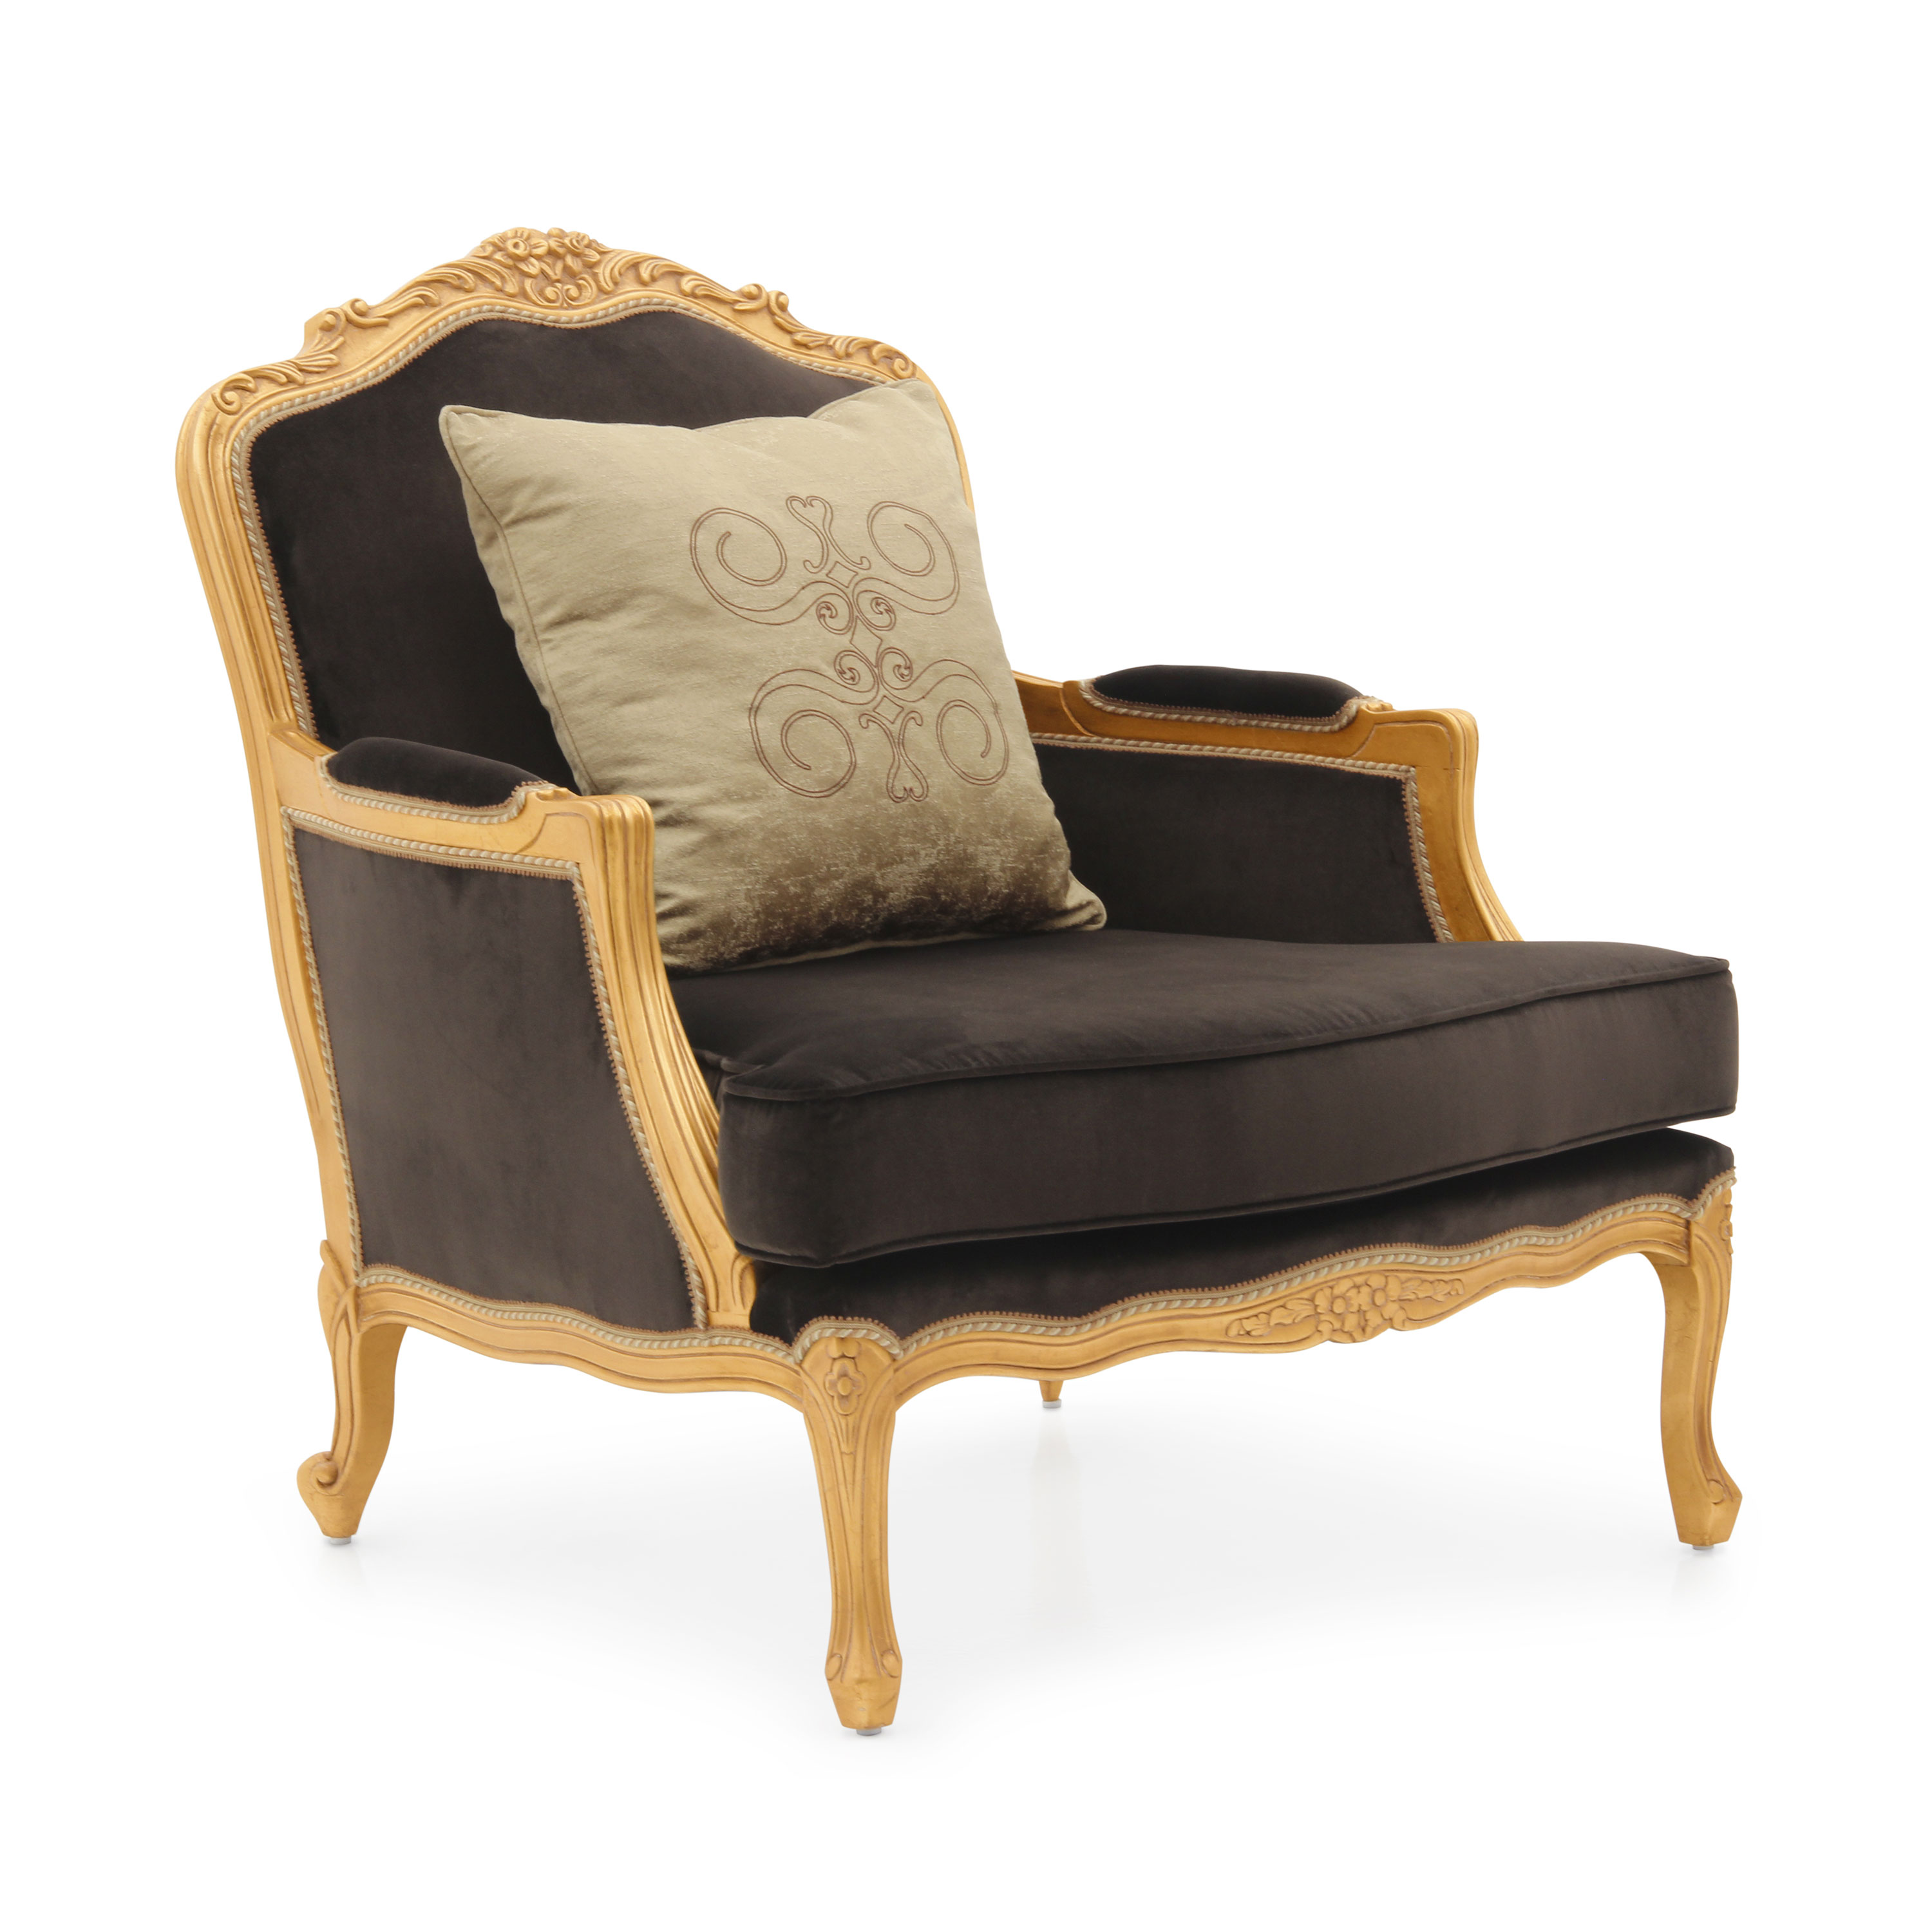 Classic Style Armchair Made of Wood Spagna | Sevensedie